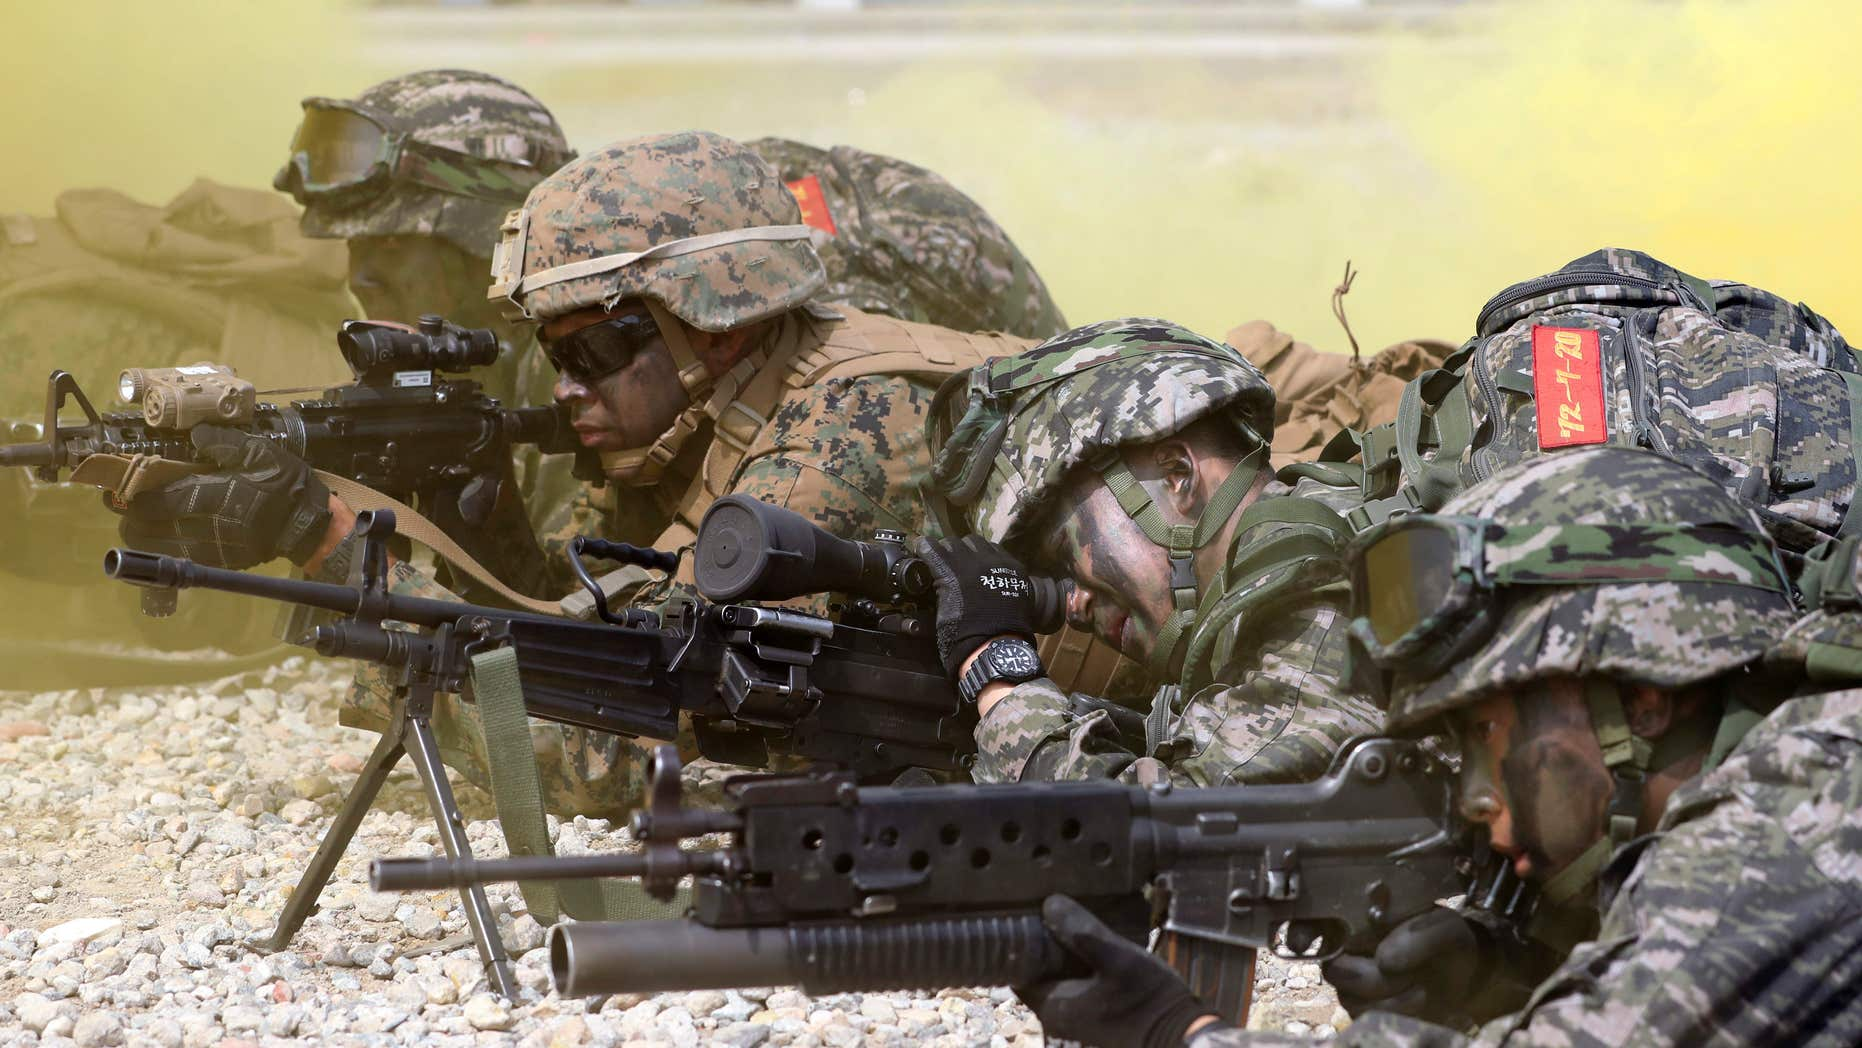 Sept. 9, 2016: South Korean and U.S. Marines aim their guns as they participate in the 66th Incheon Landing Operations Commemoration ceremony in waters off Incheon, South Korea.